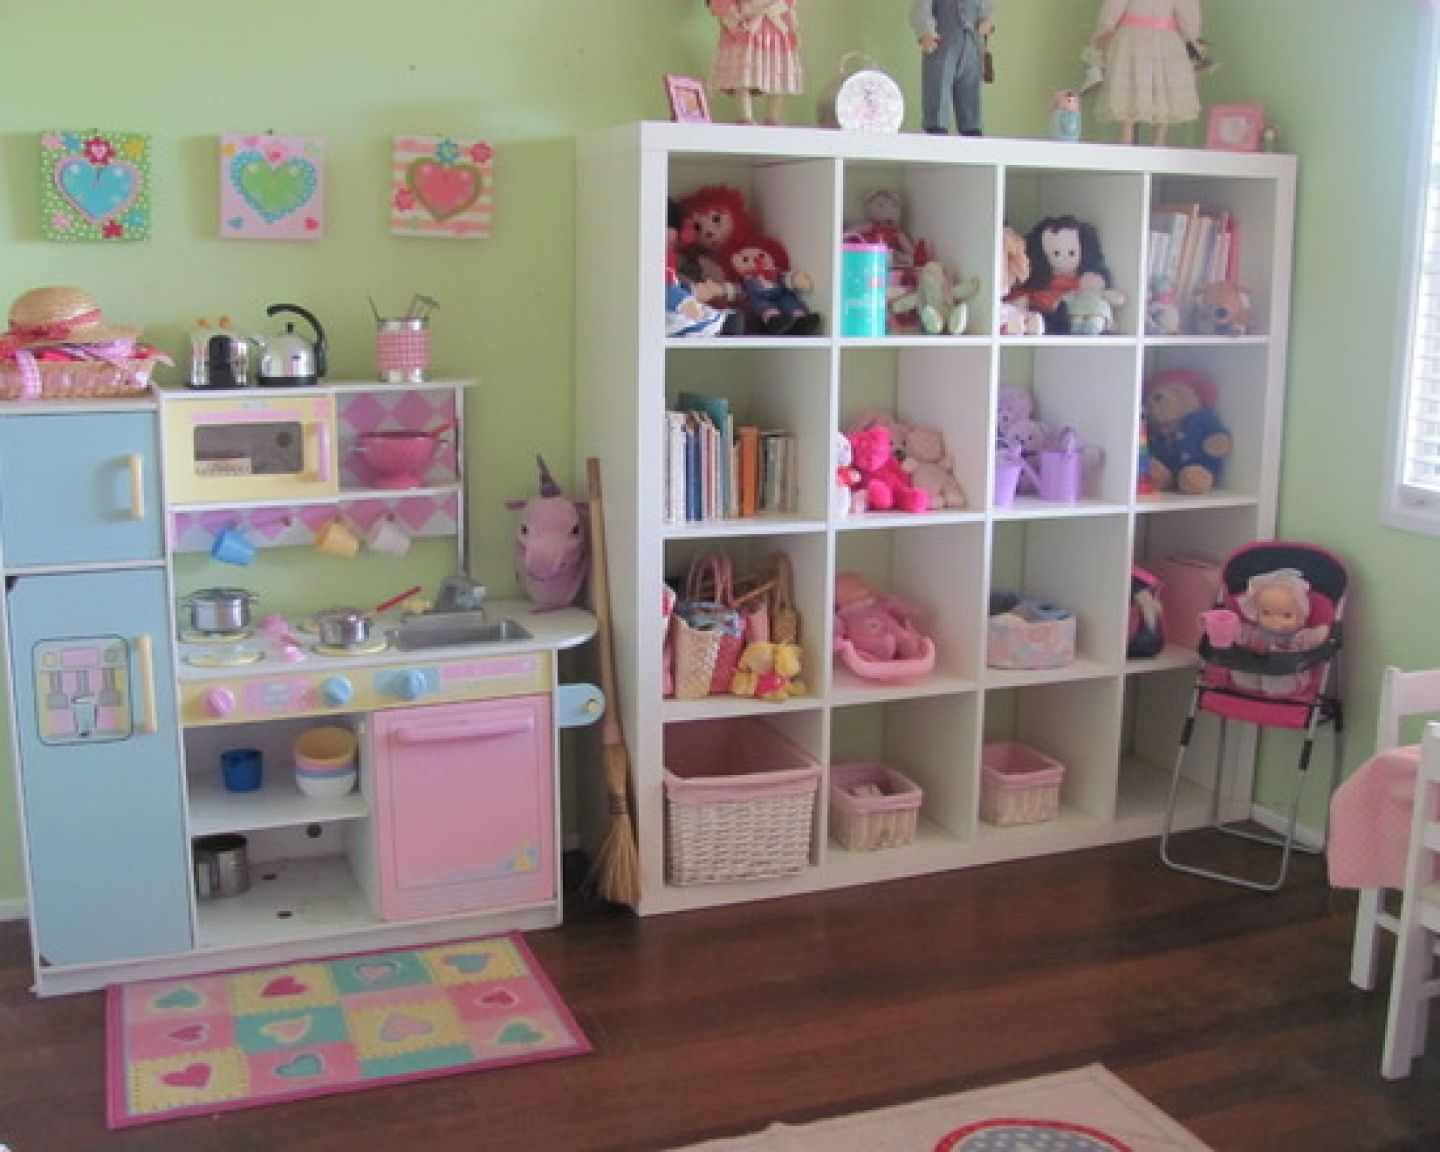 Minimalist Playroom Ideas For Girls Stylish On Playroom